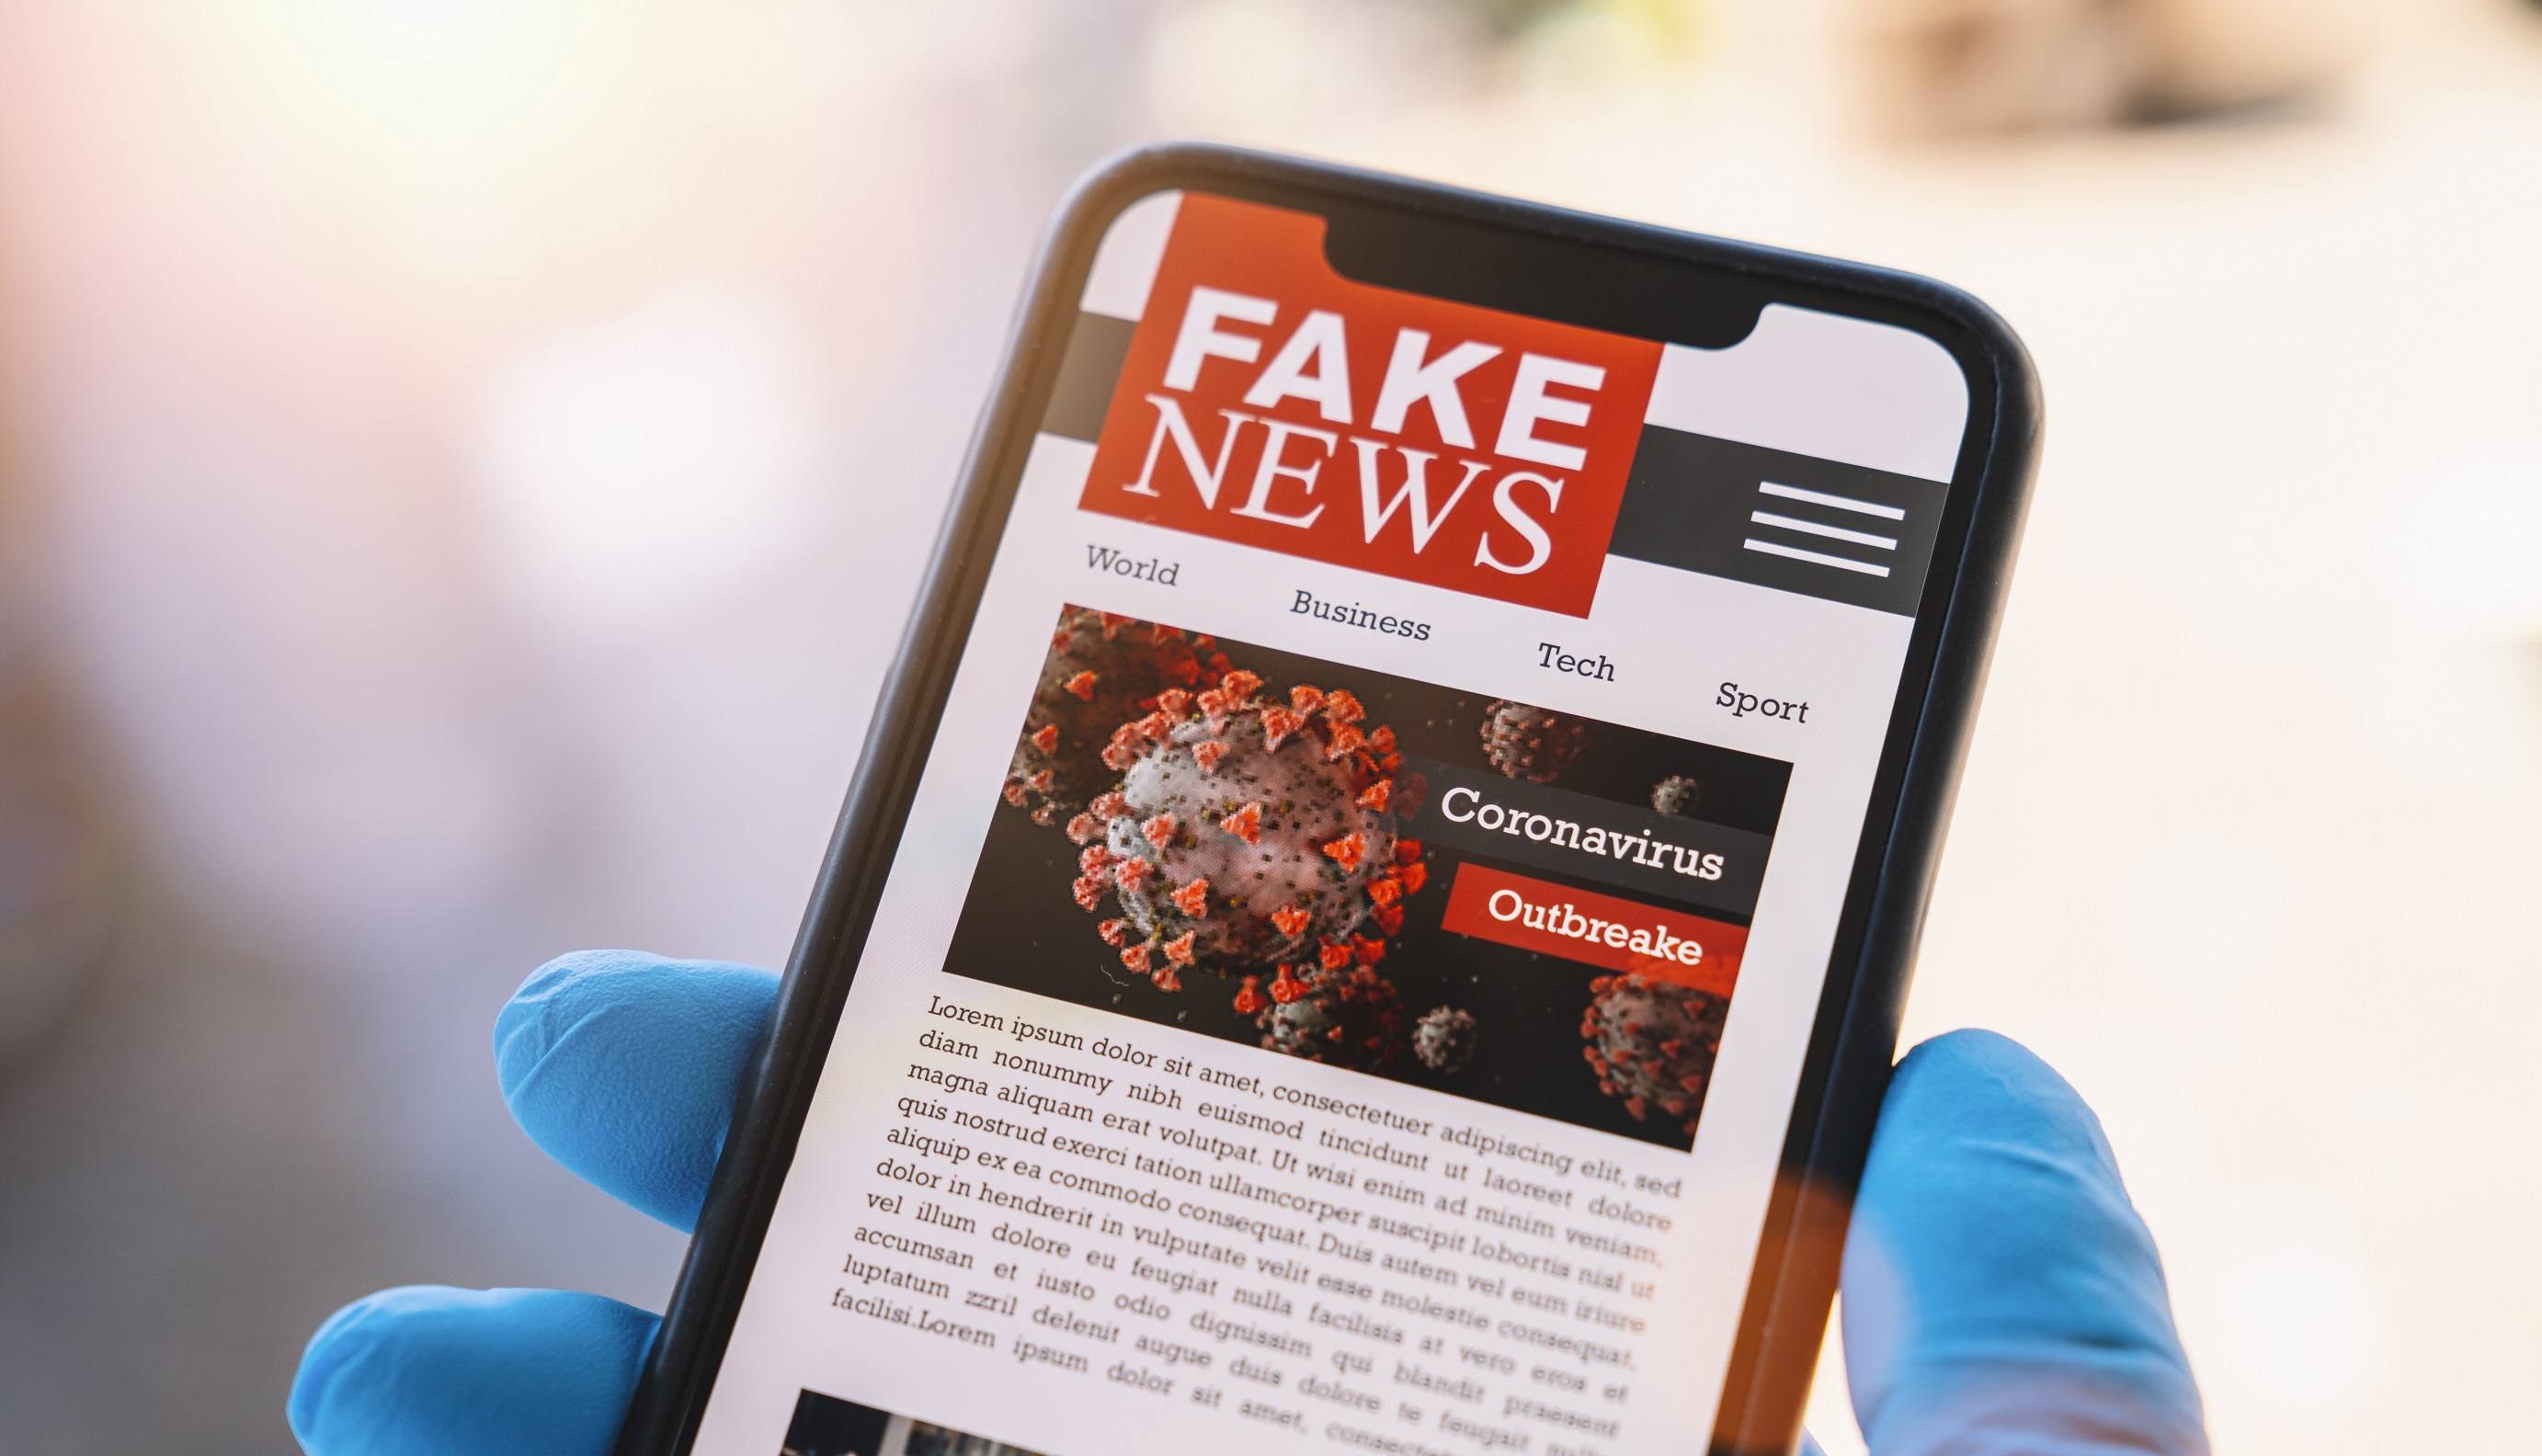 Online,Corona,Fake,News,On,A,Mobile,Phone.,Close,Up,